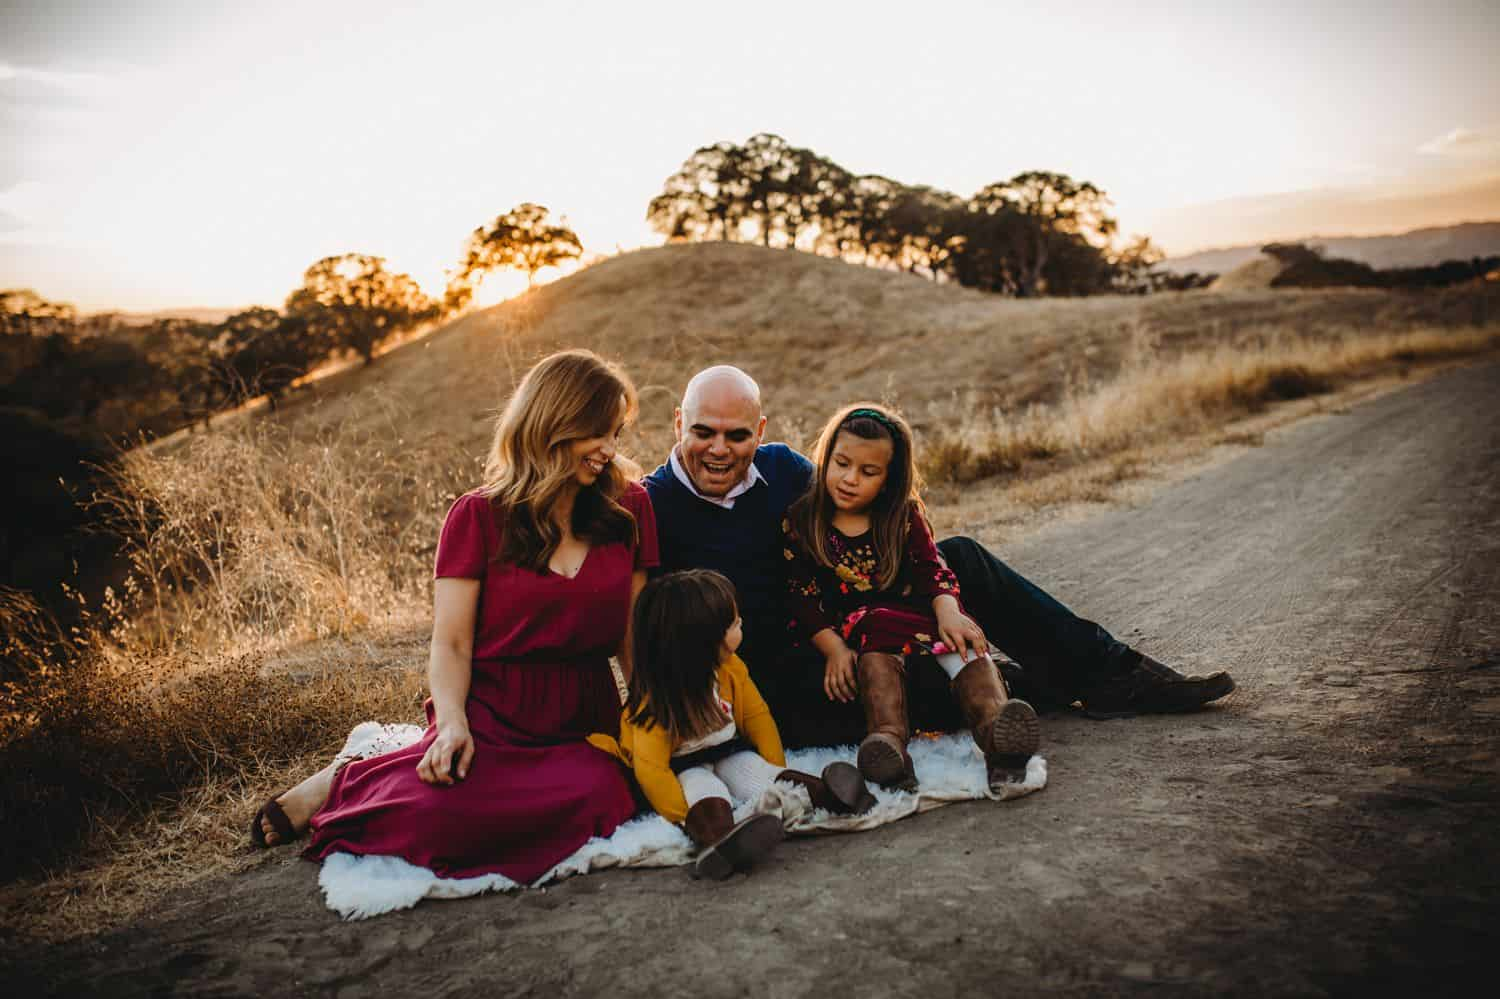 Two parents and their two young daughter sit on a picnic blanket in the middle of a field at sunset.